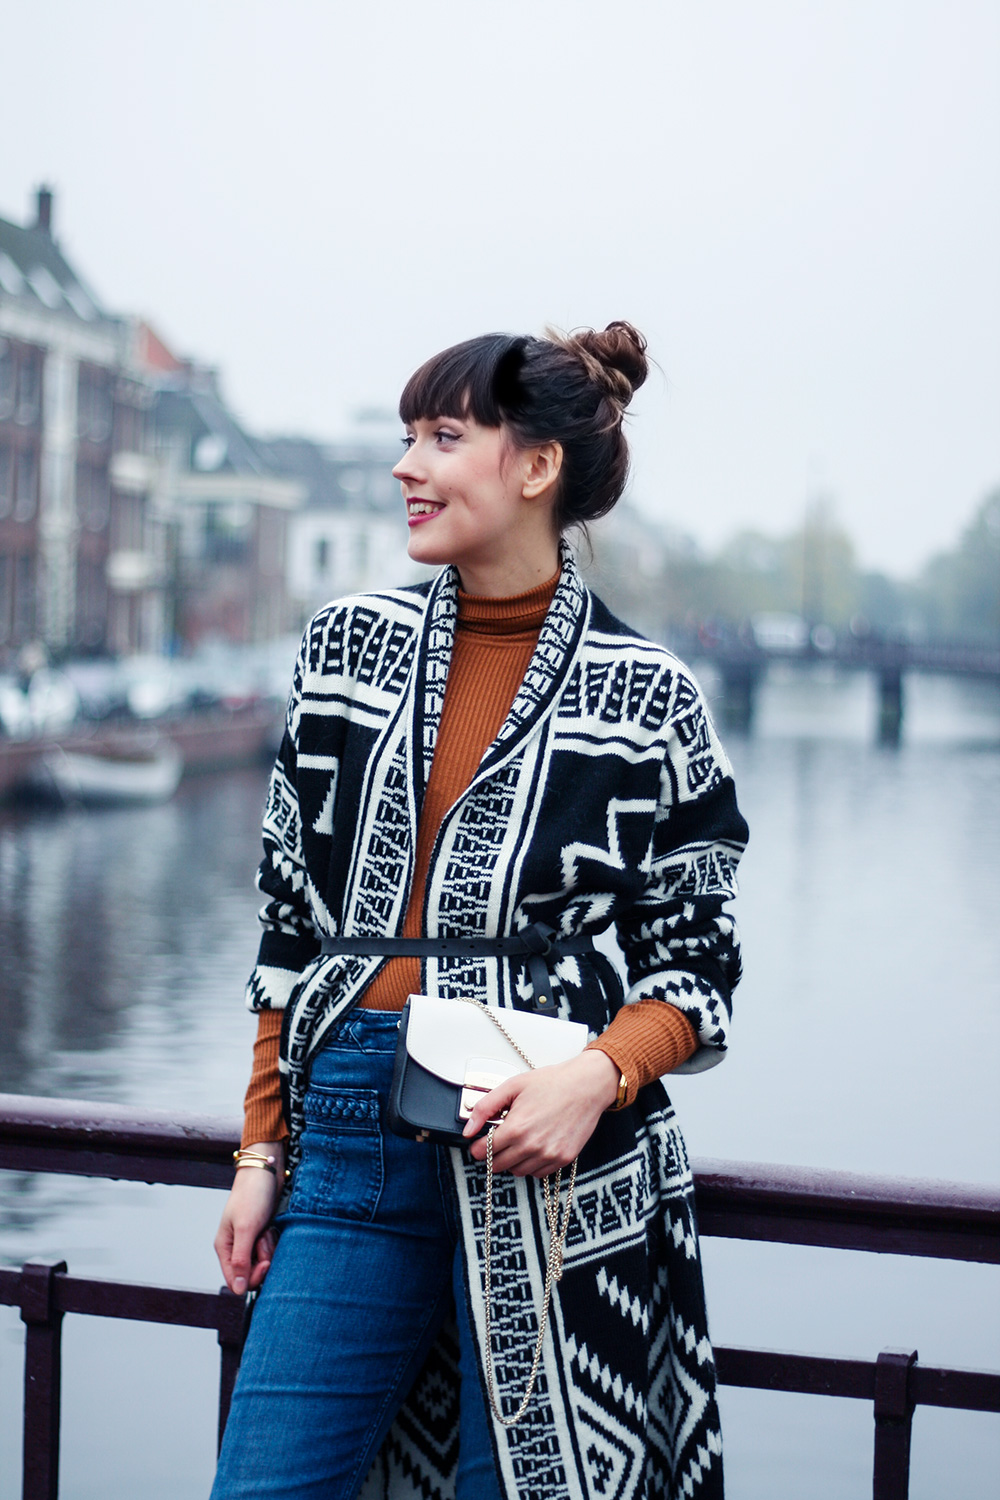 comfy-cardigan-outfit-5-things-to-make-you-happy-4